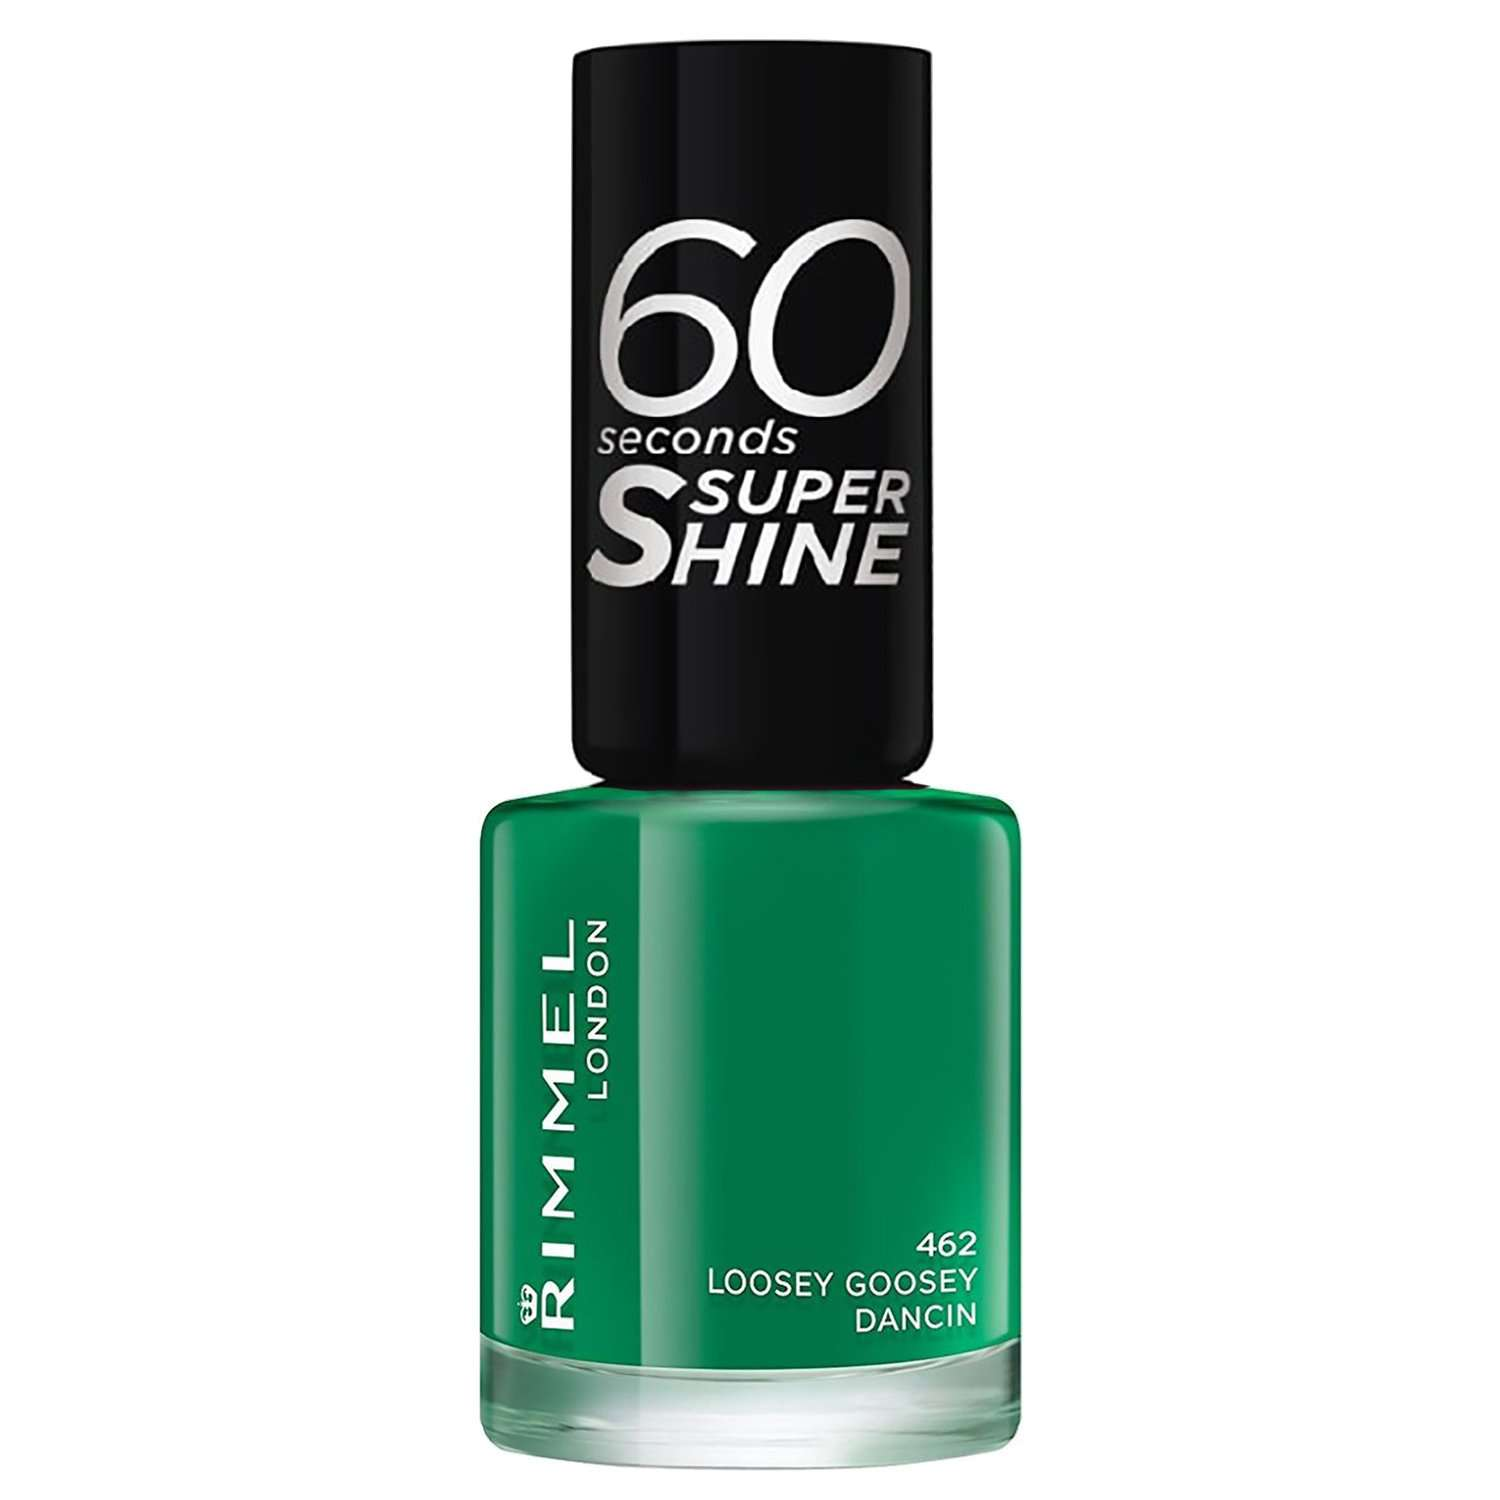 Rimmel - 60 Second Super Shine - 462 Loosey Goosey